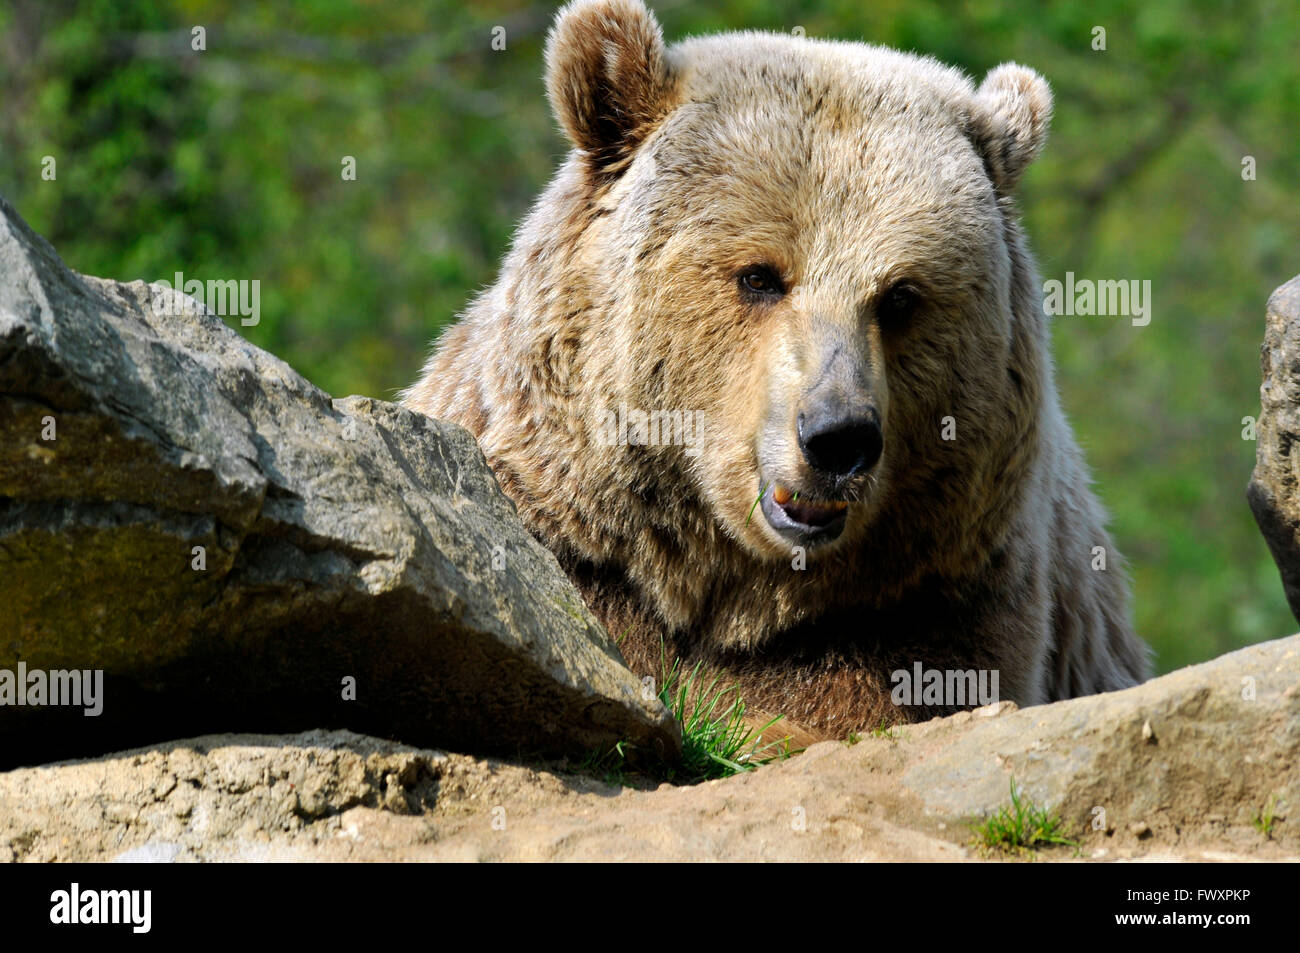 Portrait of front of a Grizzly bear (Ursus arctos horribilis) Stock Photo